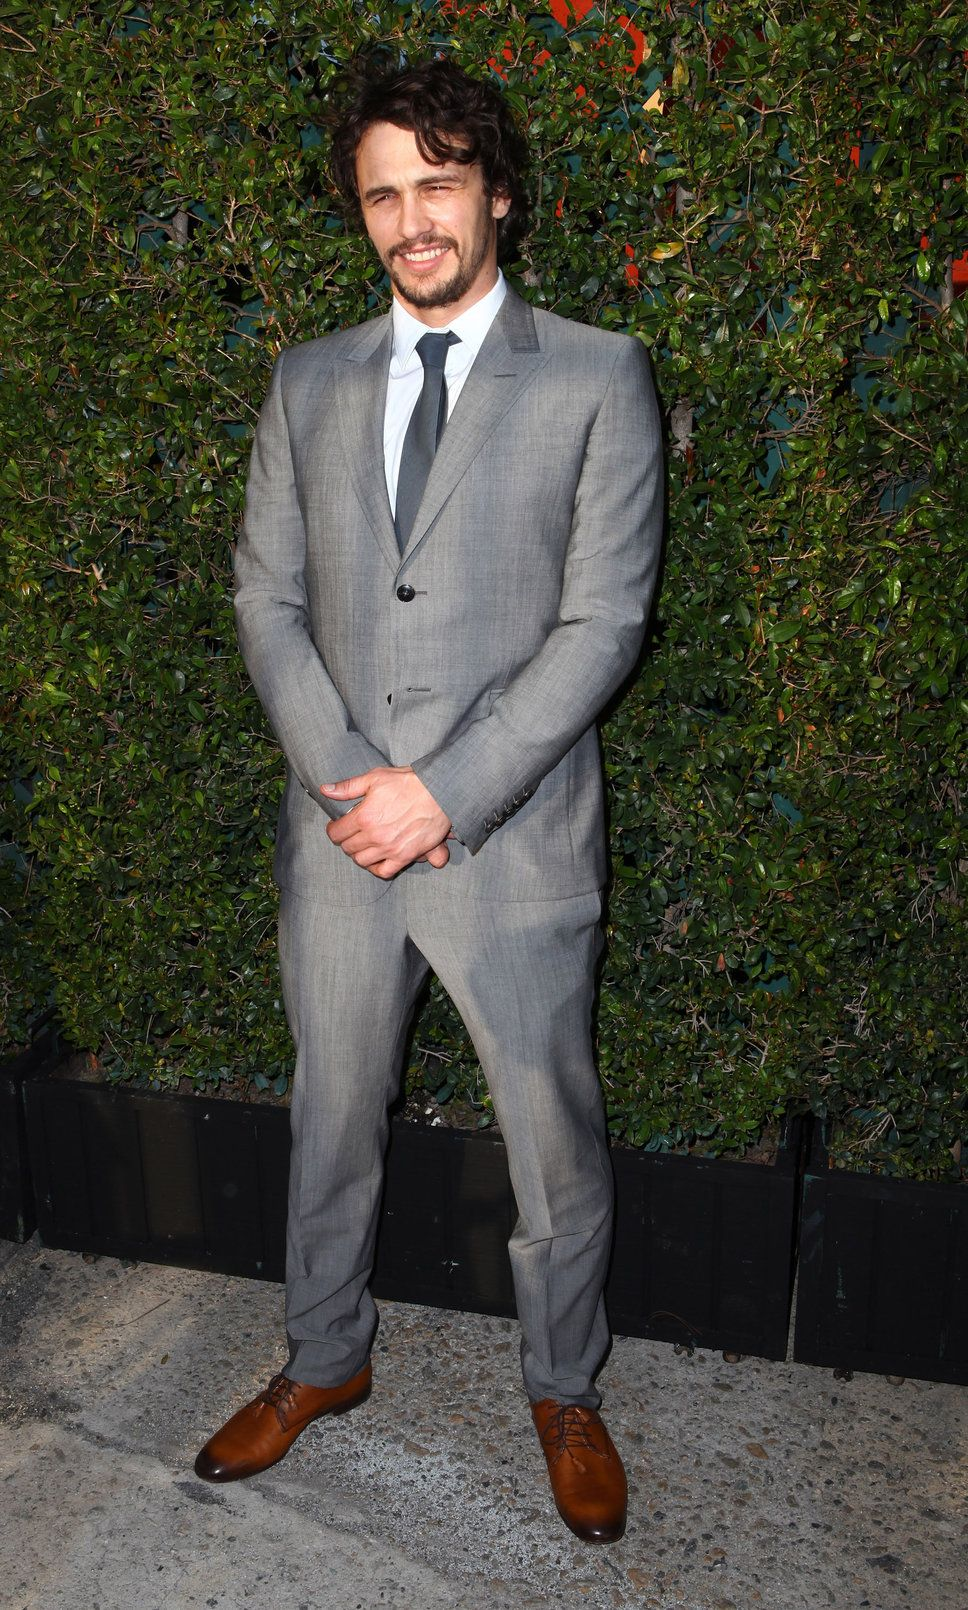 james franco grey suit blue tie handsome smile